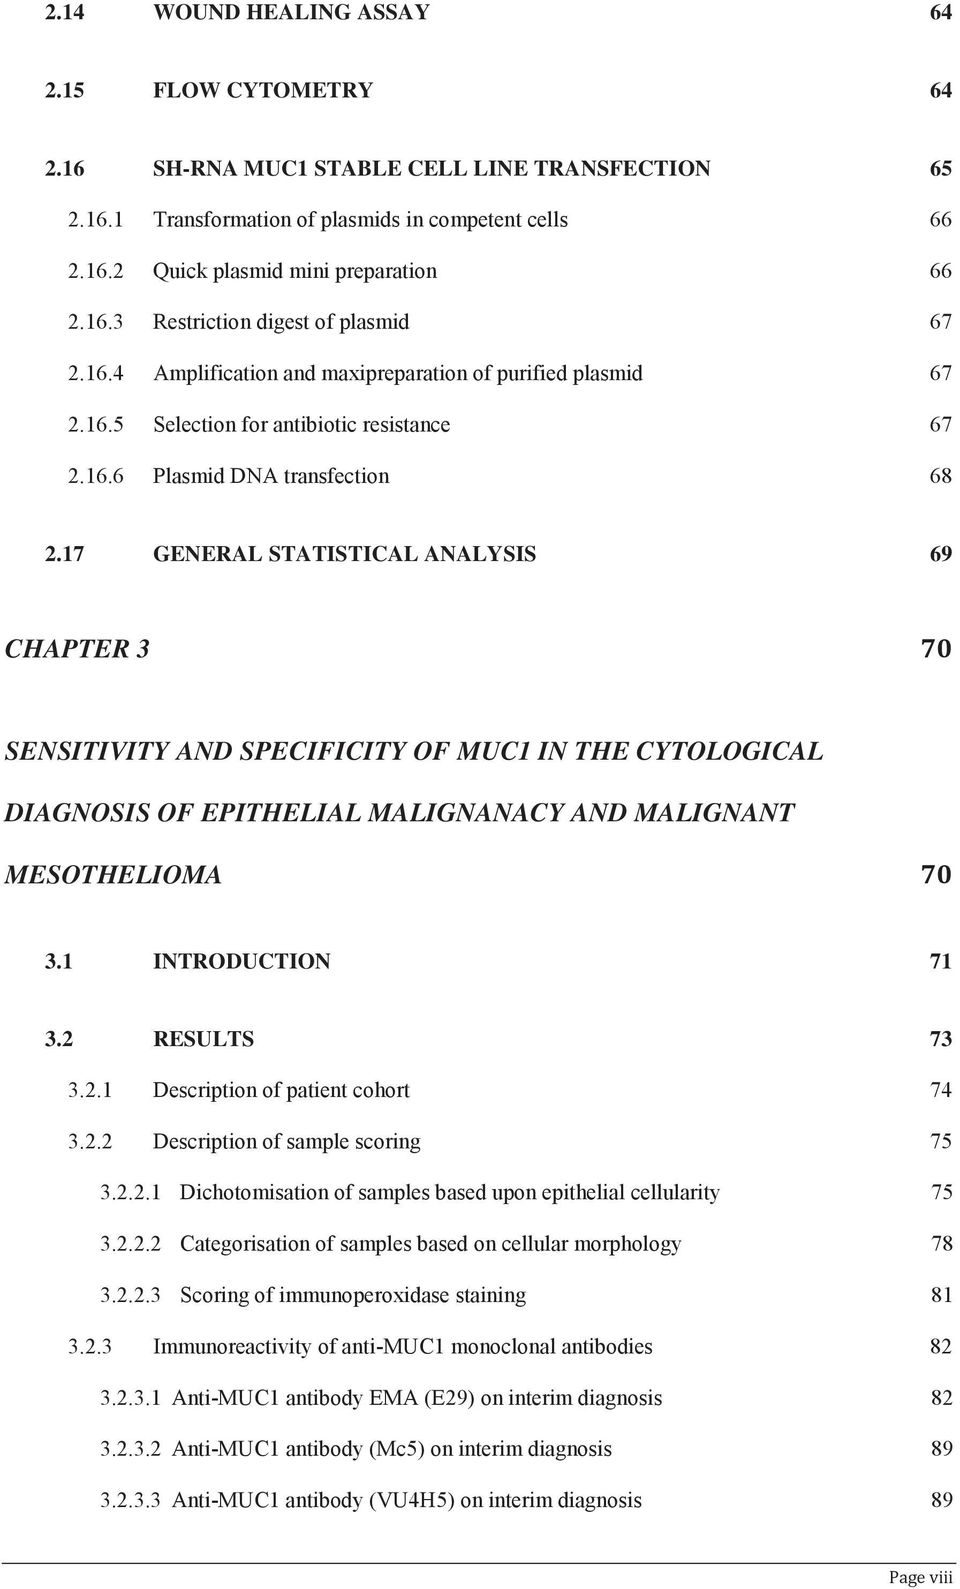 17 GENERAL STATISTICAL ANALYSIS 69 CHAPTER 3 70 SENSITIVITY AND SPECIFICITY OF MUC1 IN THE CYTOLOGICAL DIAGNOSIS OF EPITHELIAL MALIGNANACY AND MALIGNANT MESOTHELIOMA 70 3.1 INTRODUCTION 71 3.